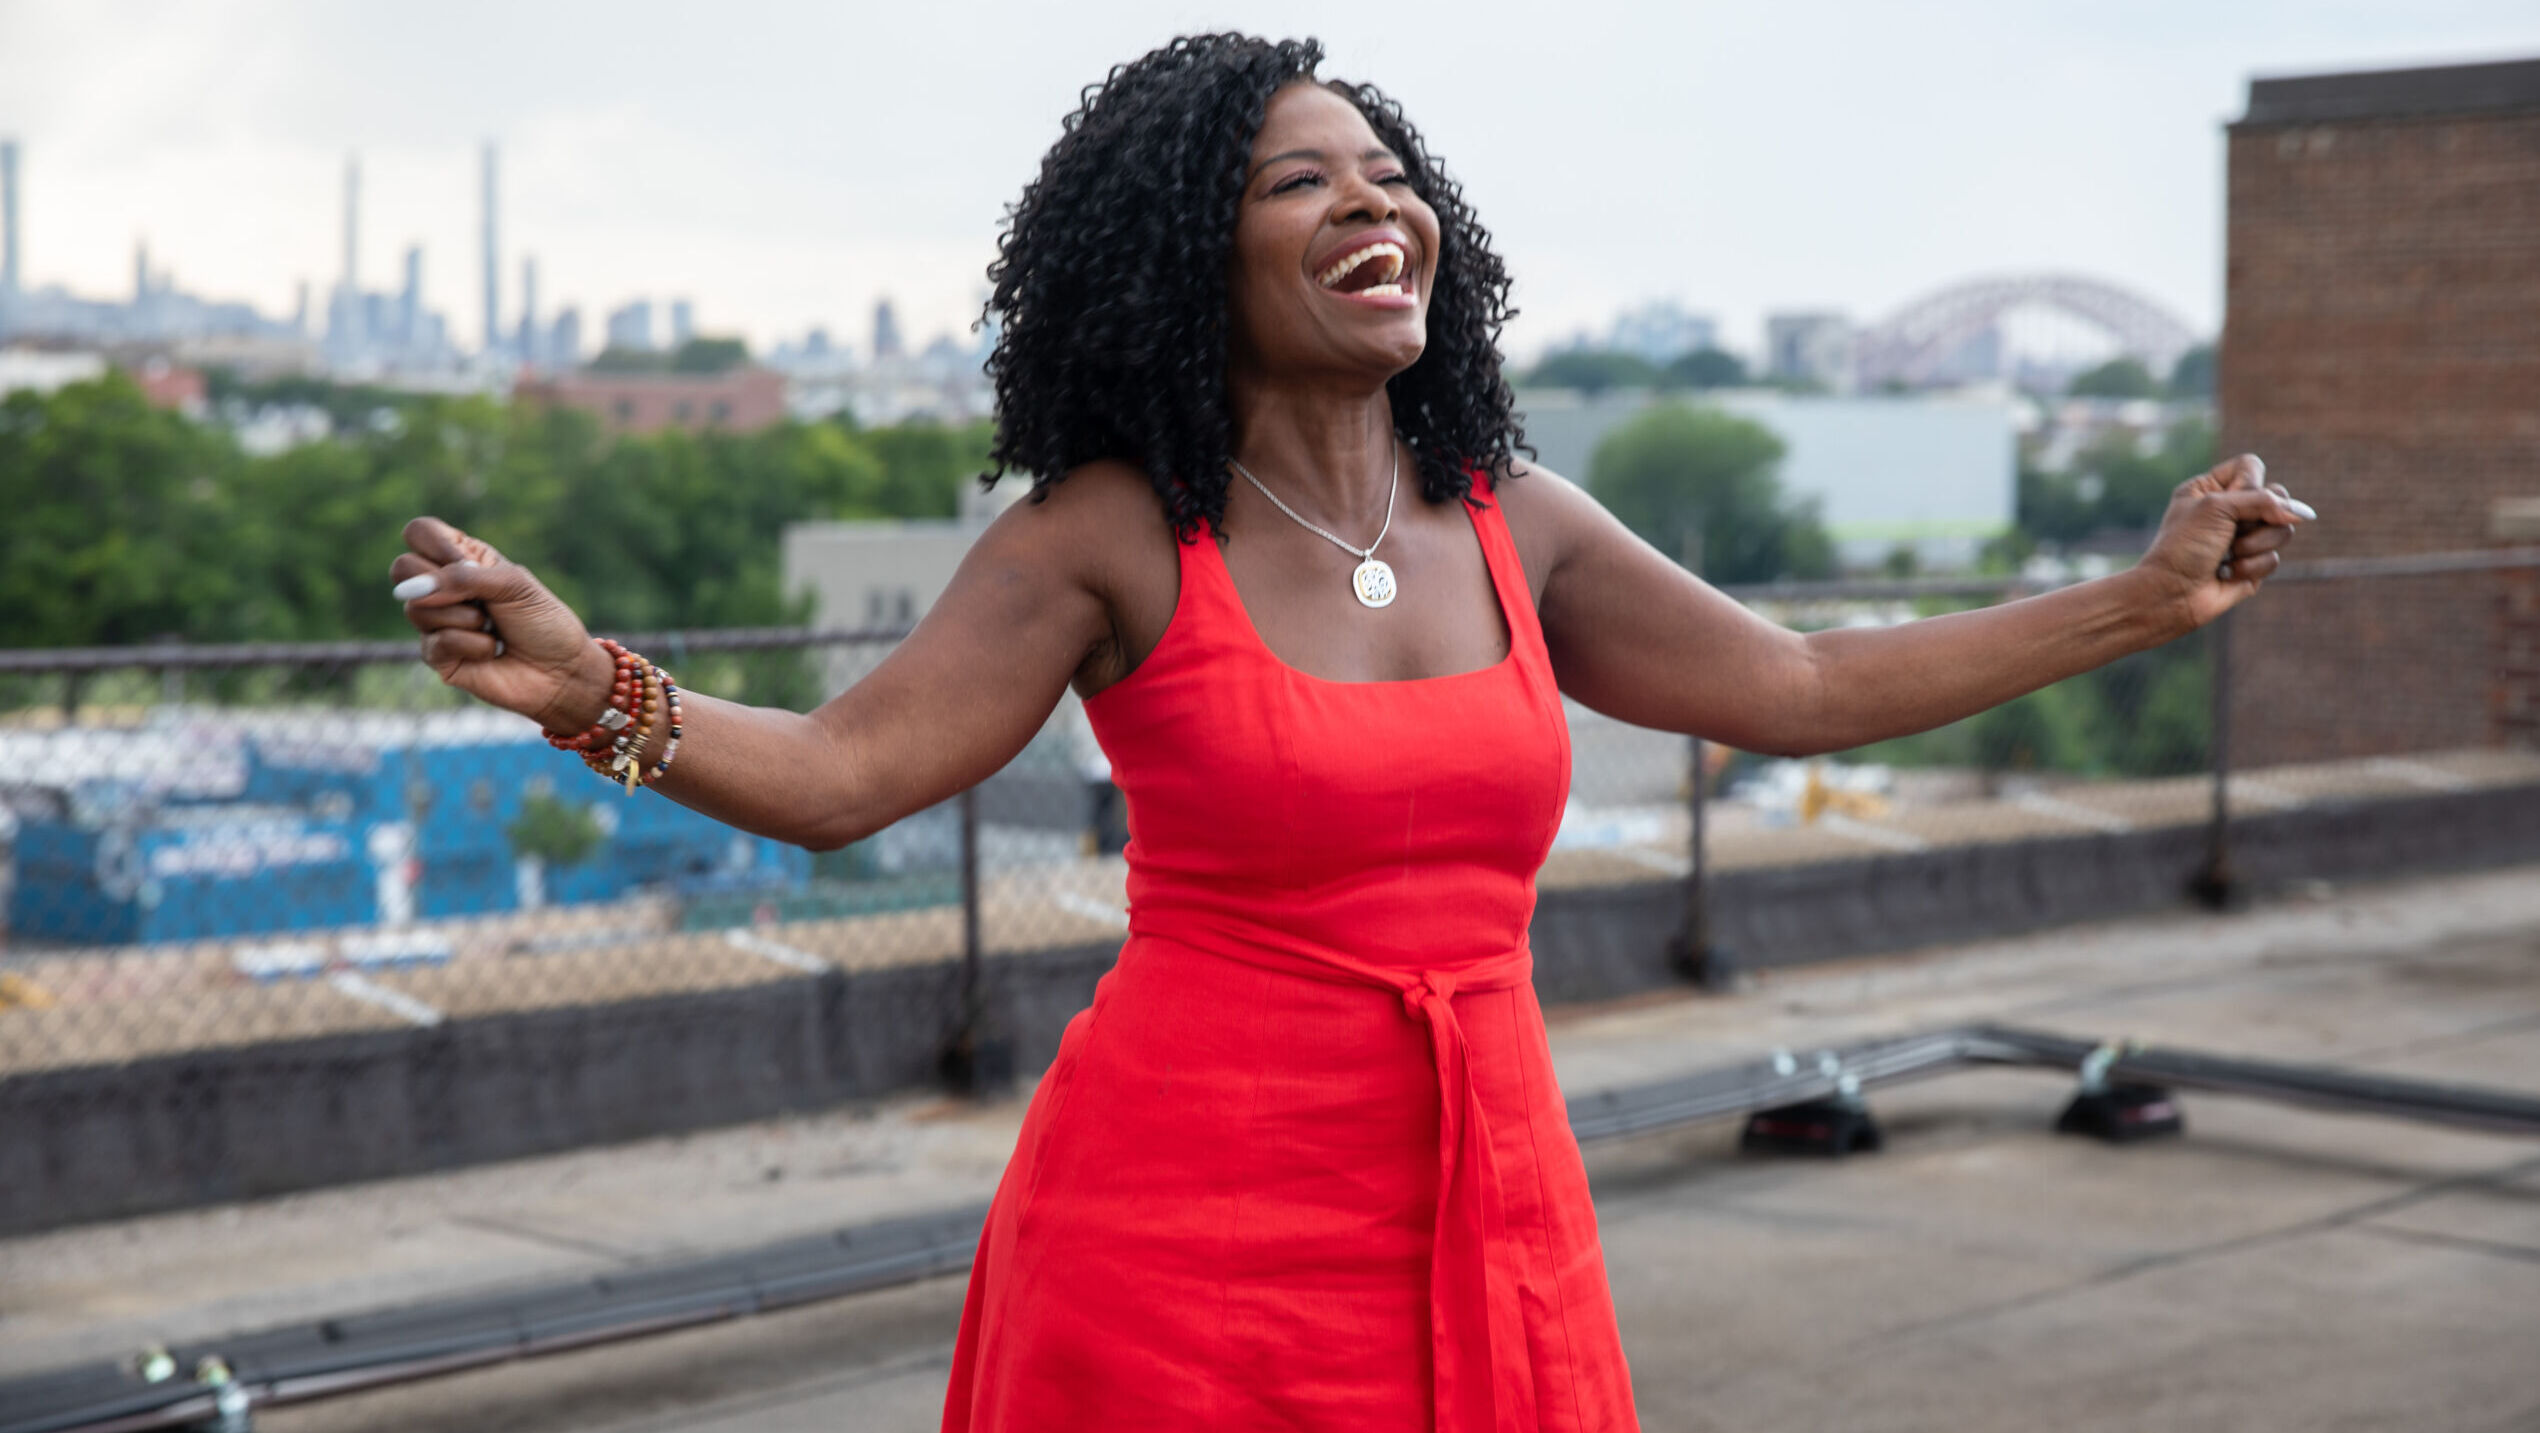 A black woman in red dress stands with outstretched arms on a rooftop with skyline in background